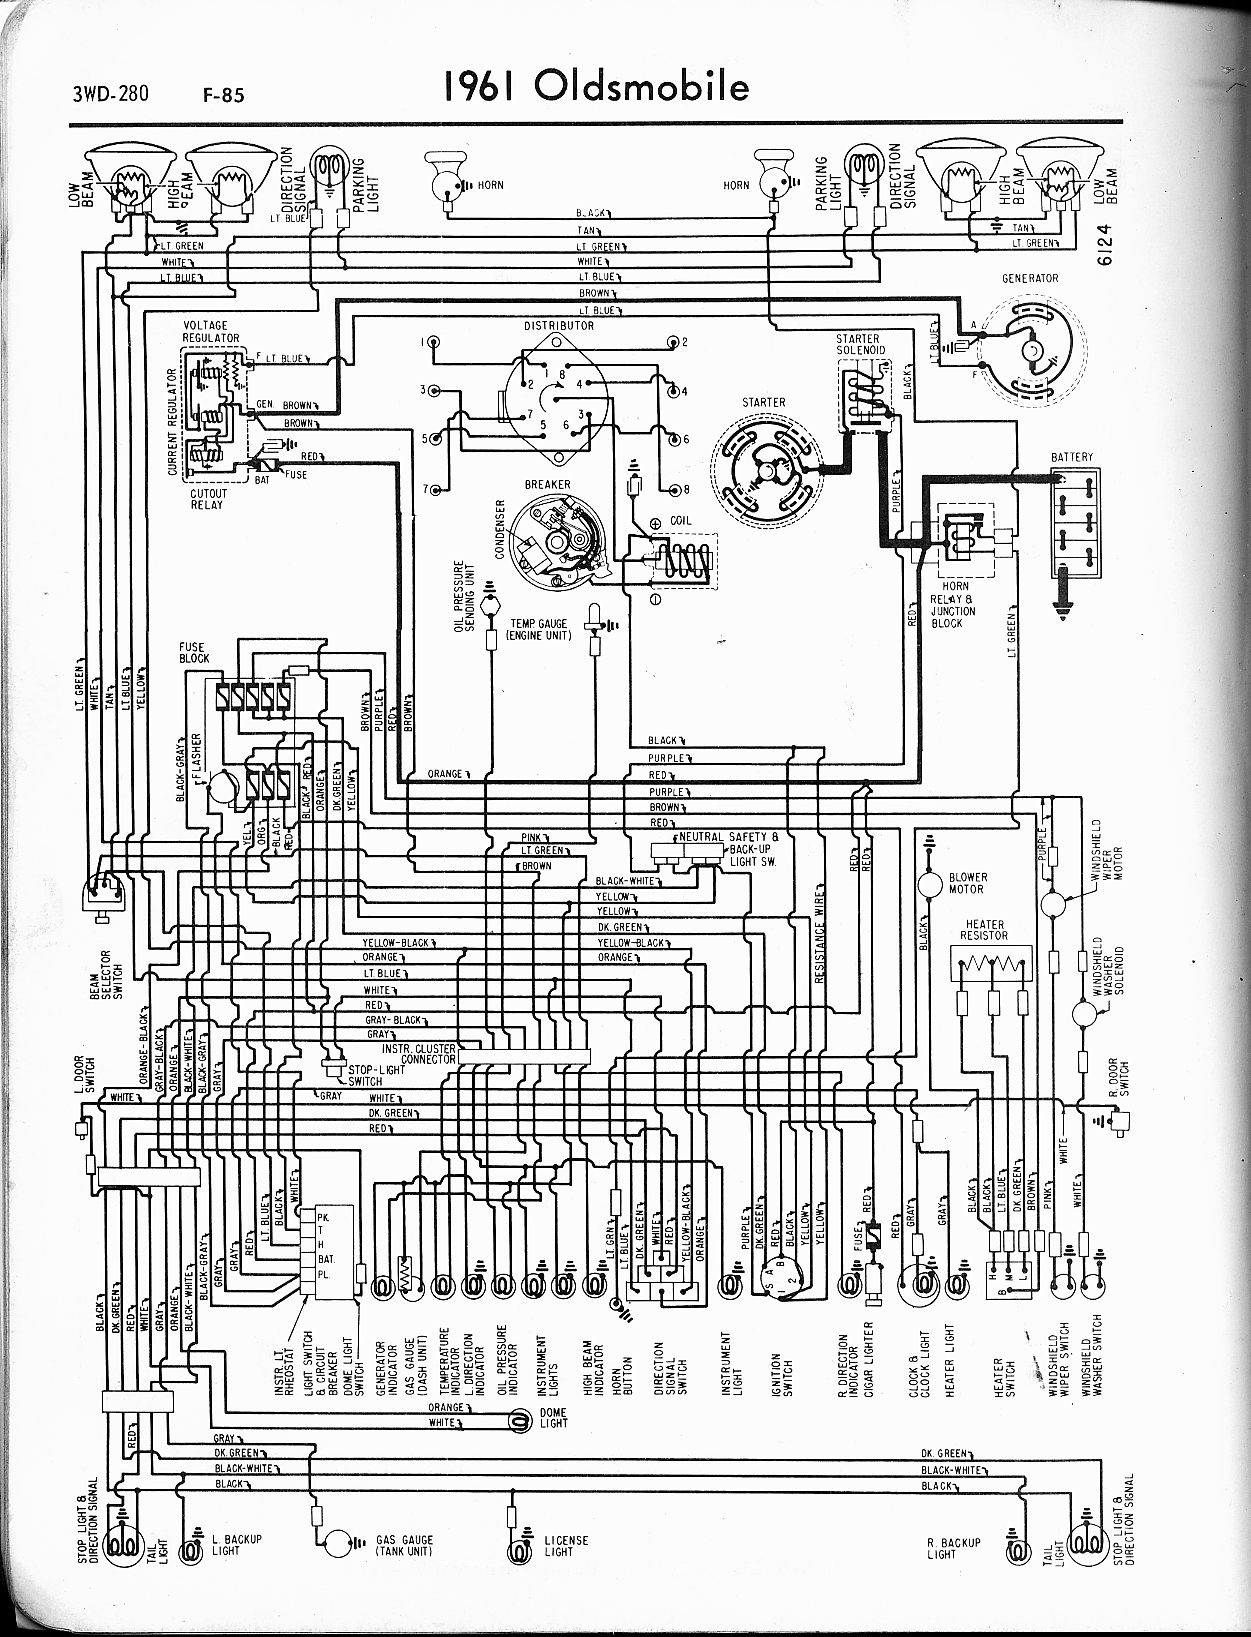 1994 Thunderbird Super Coupe Wiring Diagram Schematic Camaro Oldsmobile Diagrams The Old Car Manual Project Rh Oldcarmanualproject Com